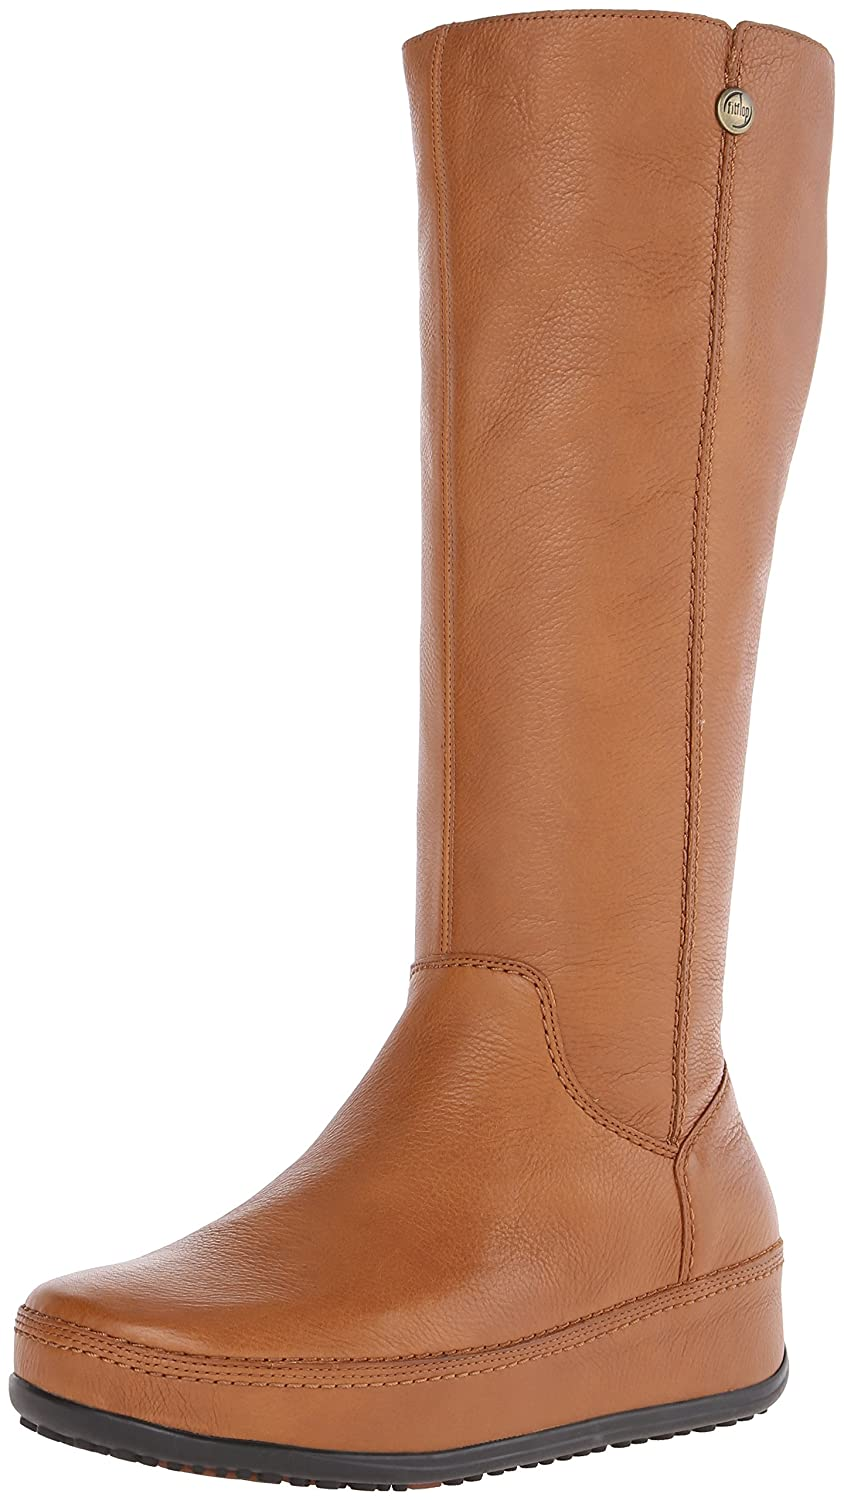 FitFlop Women's Superboot Leather Boot Tan